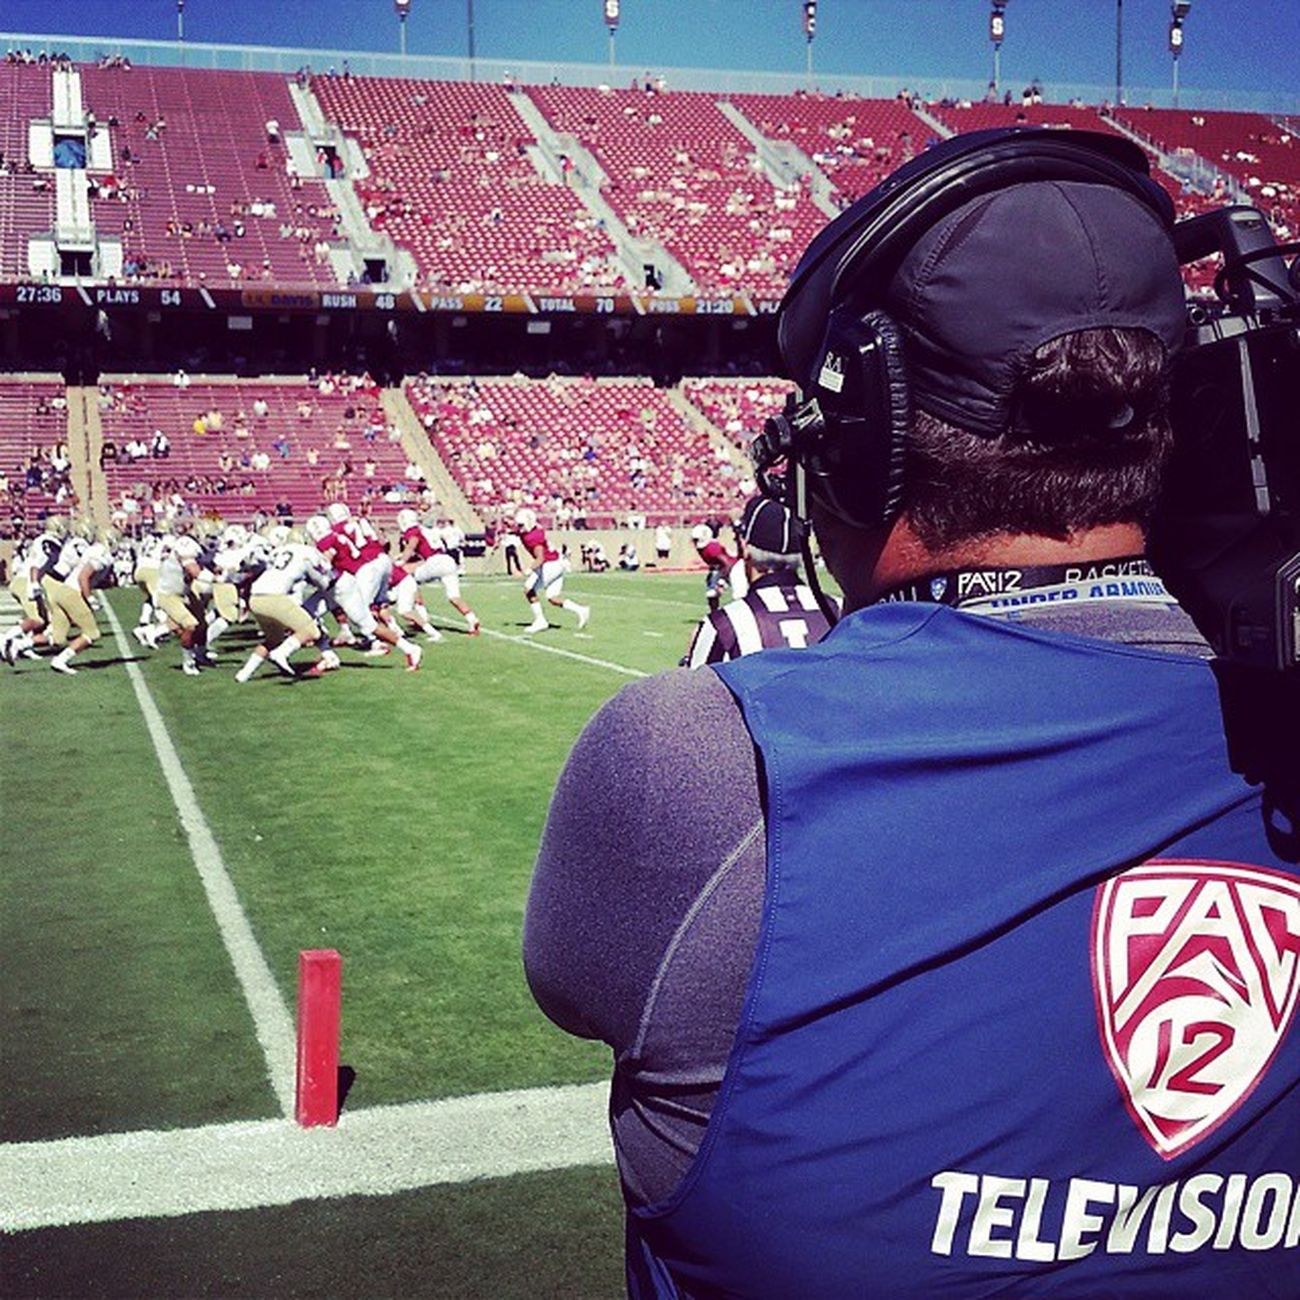 My good friend @andytelevision bustin it making great shots today College Football Week1 pt.2 Stanford